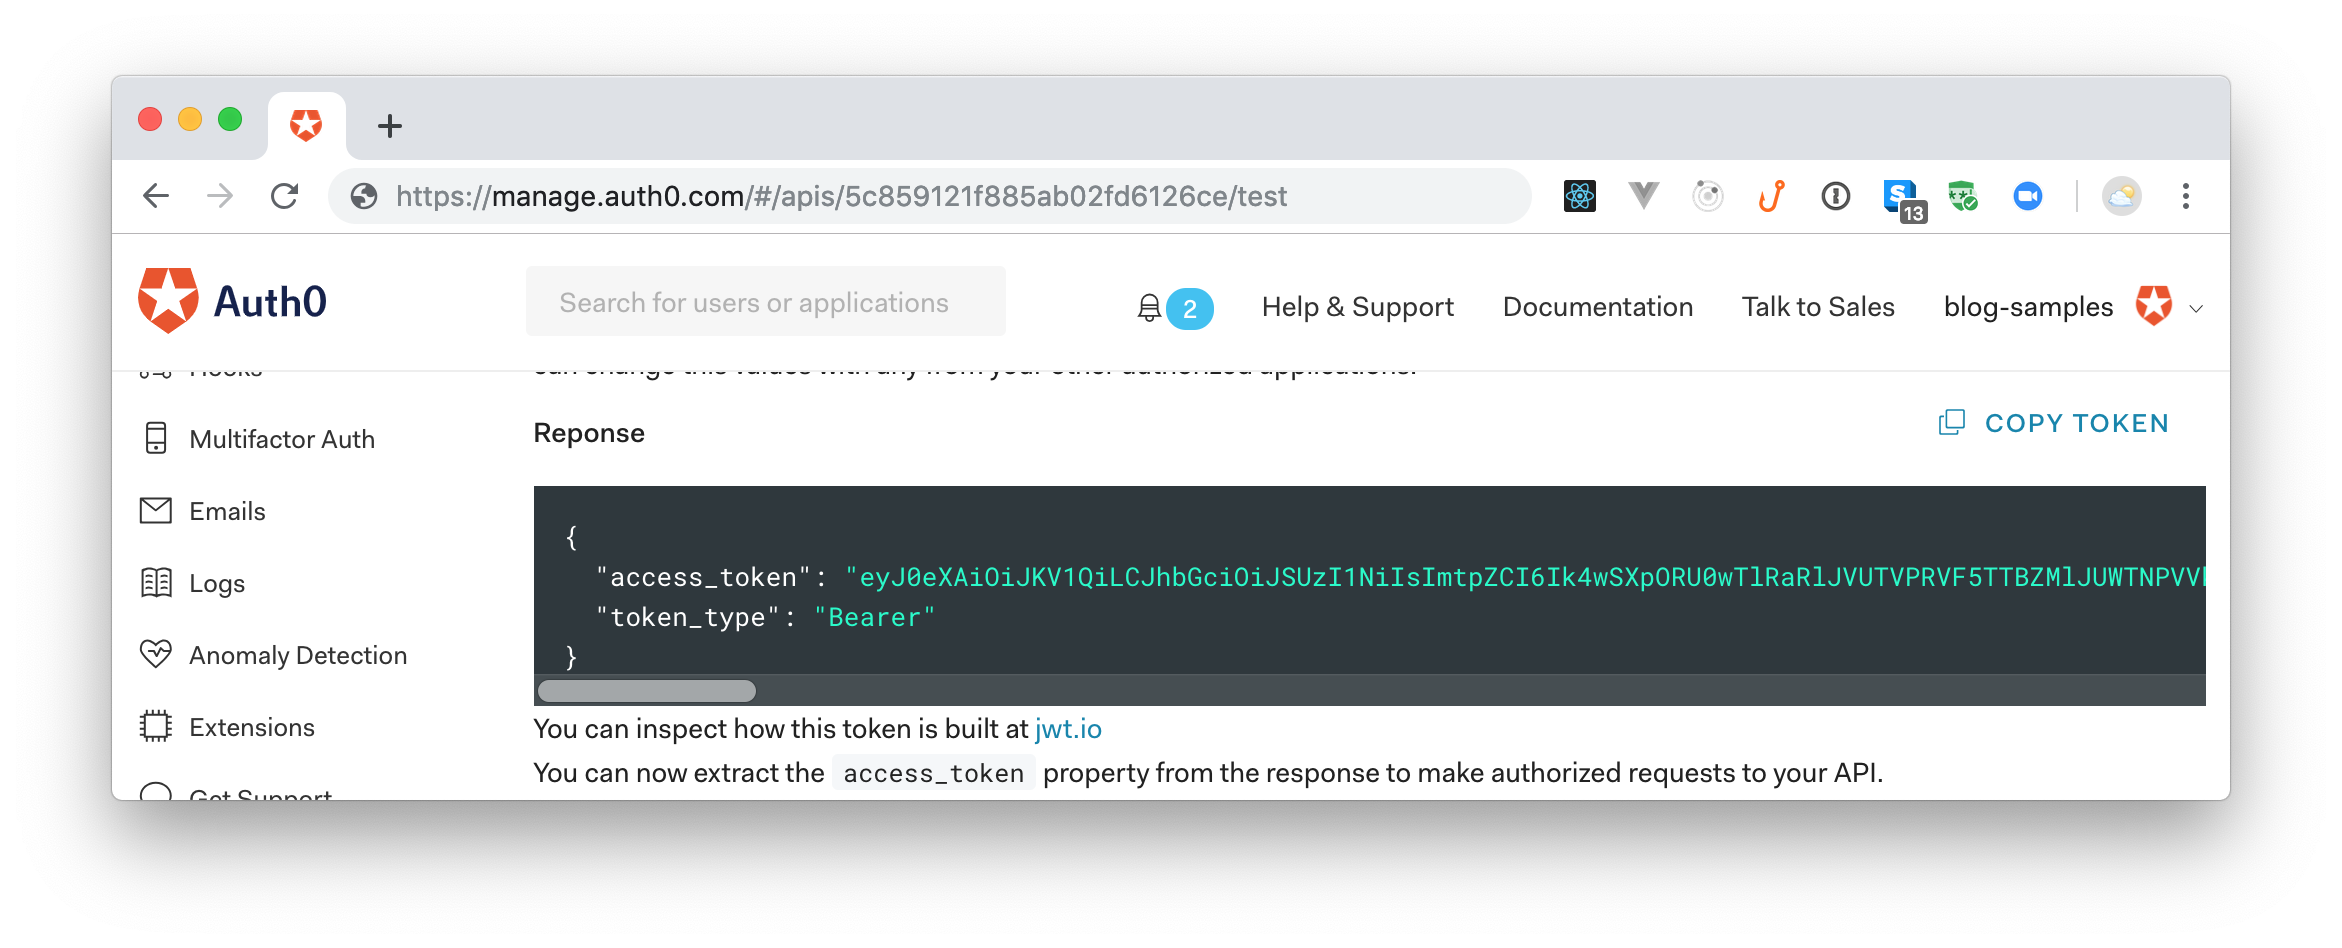 Copying the test access token to consume your Laravel and GraphQL API.